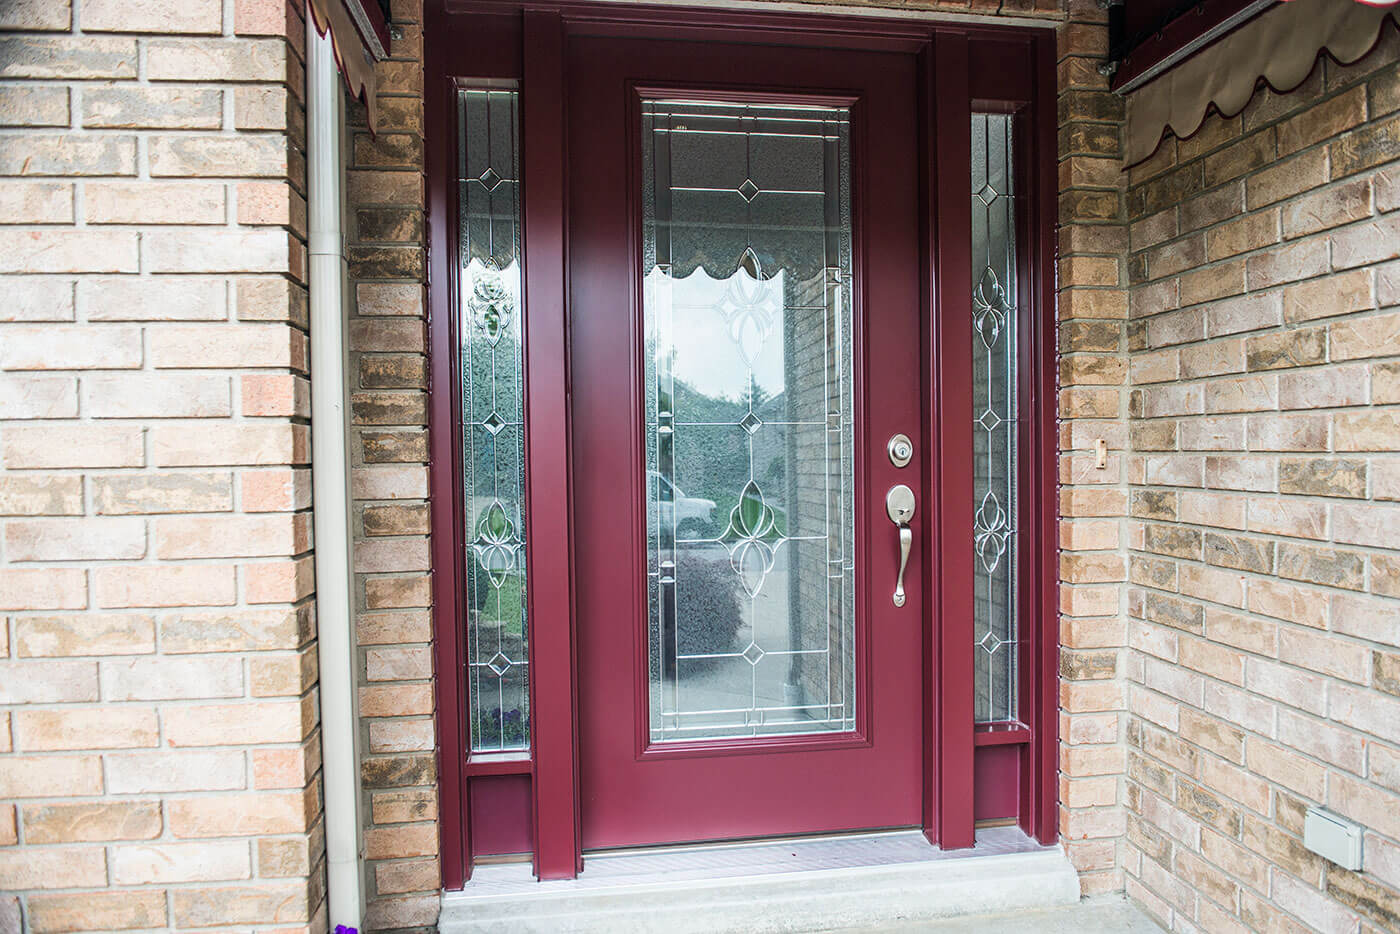 Custom Made Steel Entry Door System In Dark Red Colour and Custom Window Design